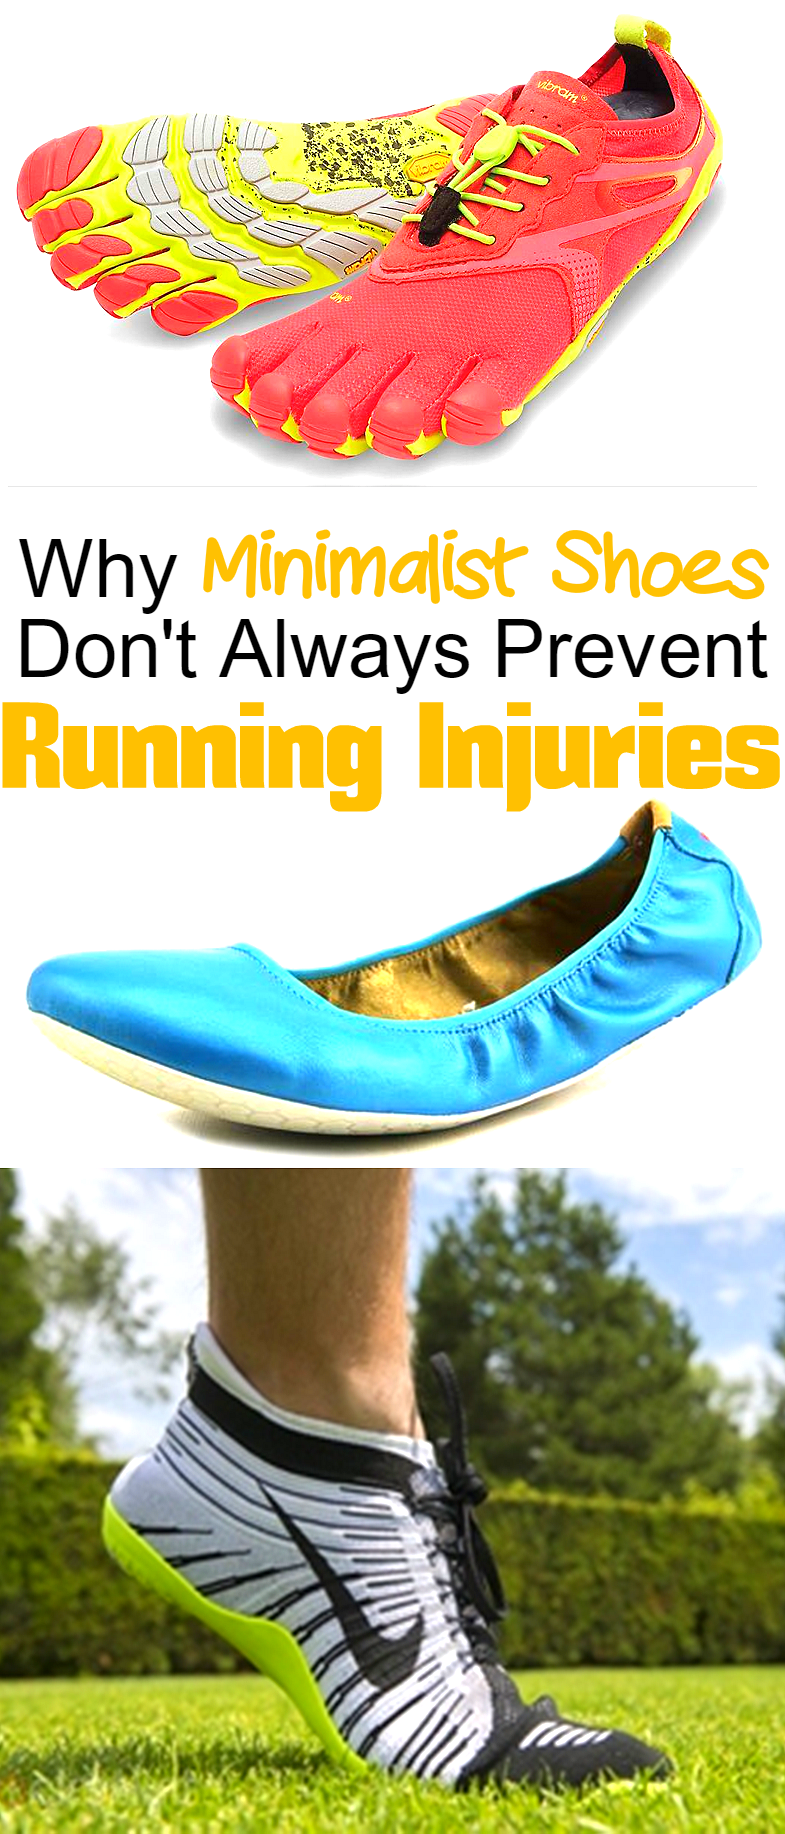 Why Minimalist Shoes Aren't Preventing Running Injuries ...